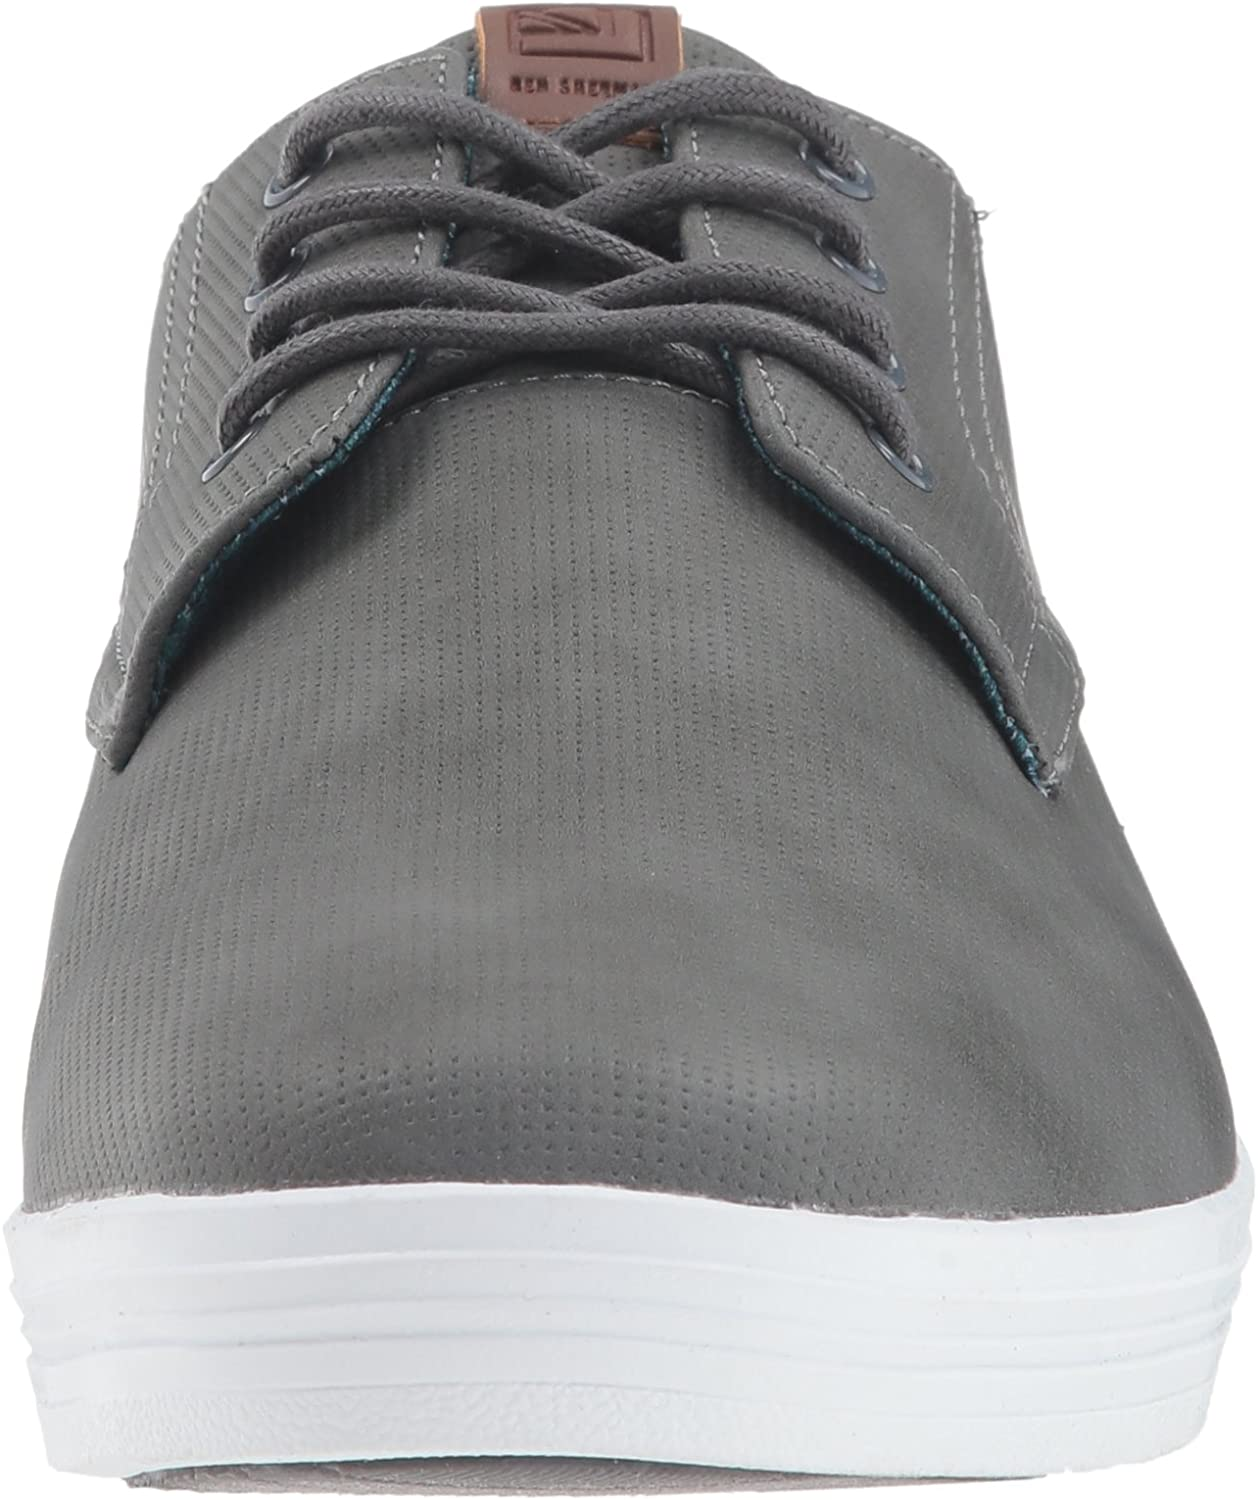 Ben Sherman Mens Payton Oxford